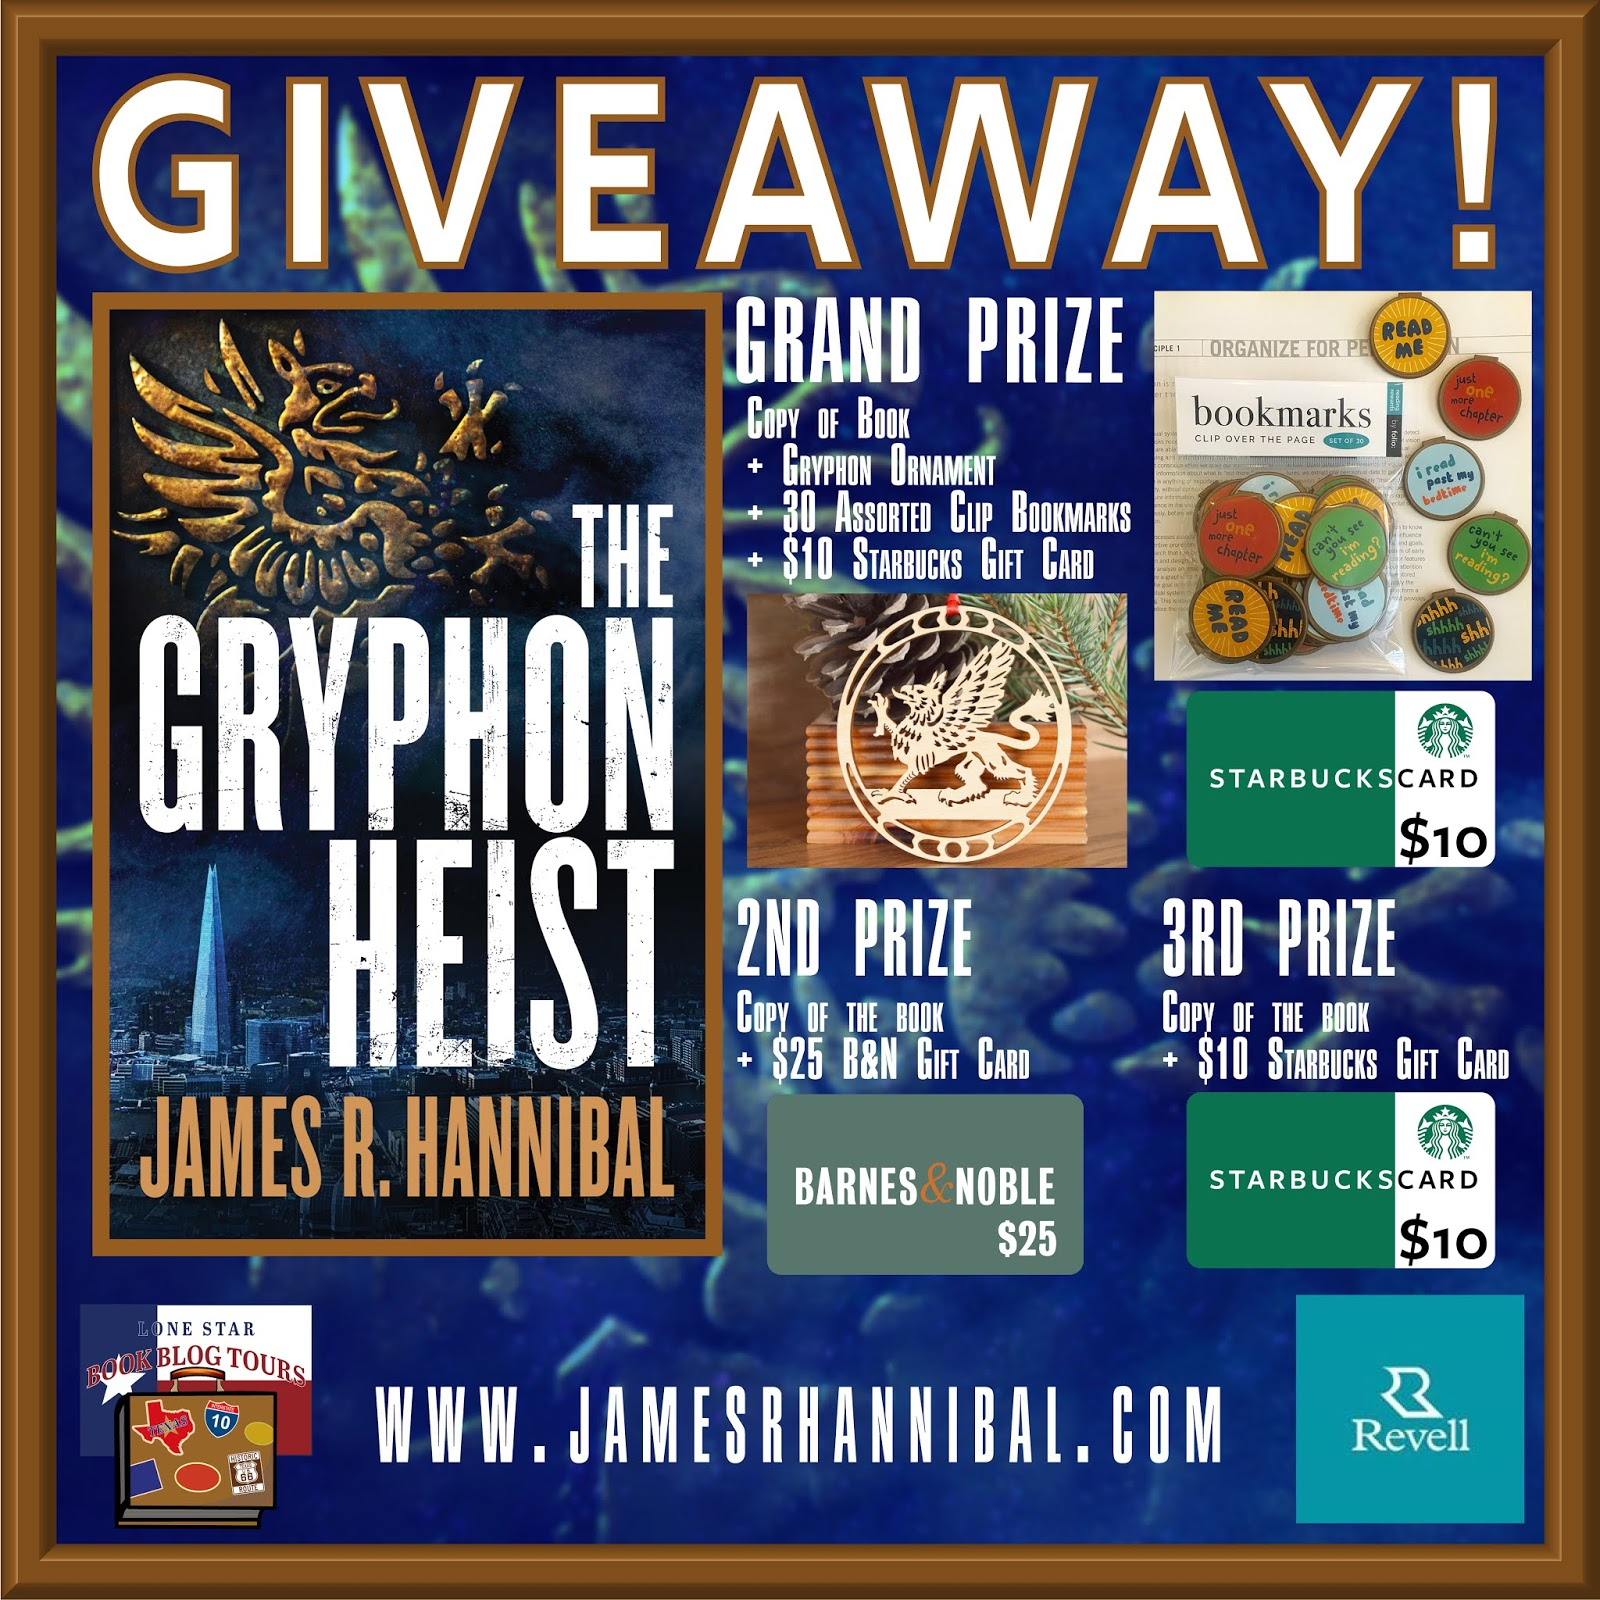 The Gryphon Heist tour giveaway graphic